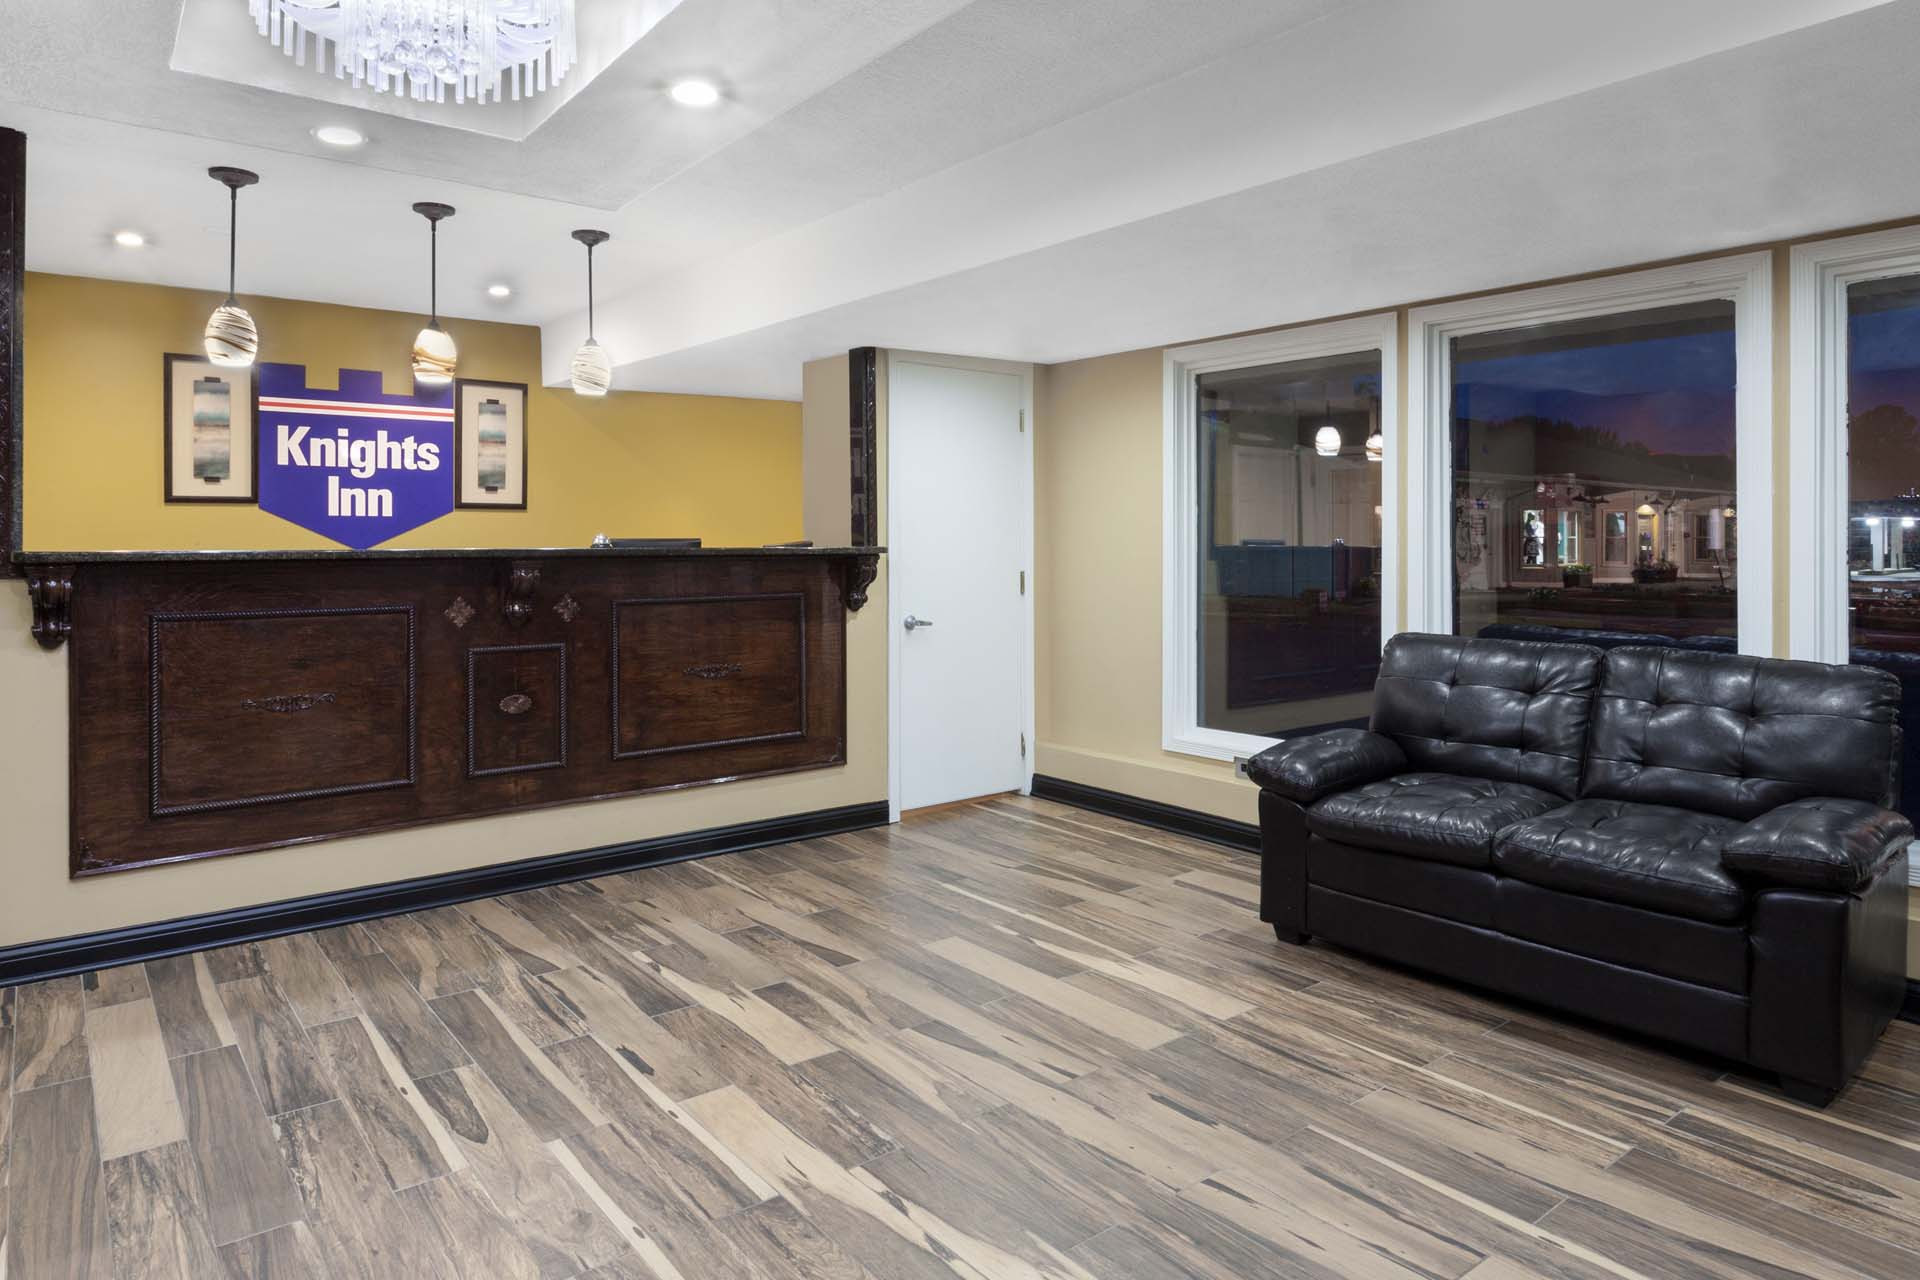 authentic hardwood flooring albany ny of hotels in jackson tn knights inn jackson tn jackson tn pertaining to lobby view